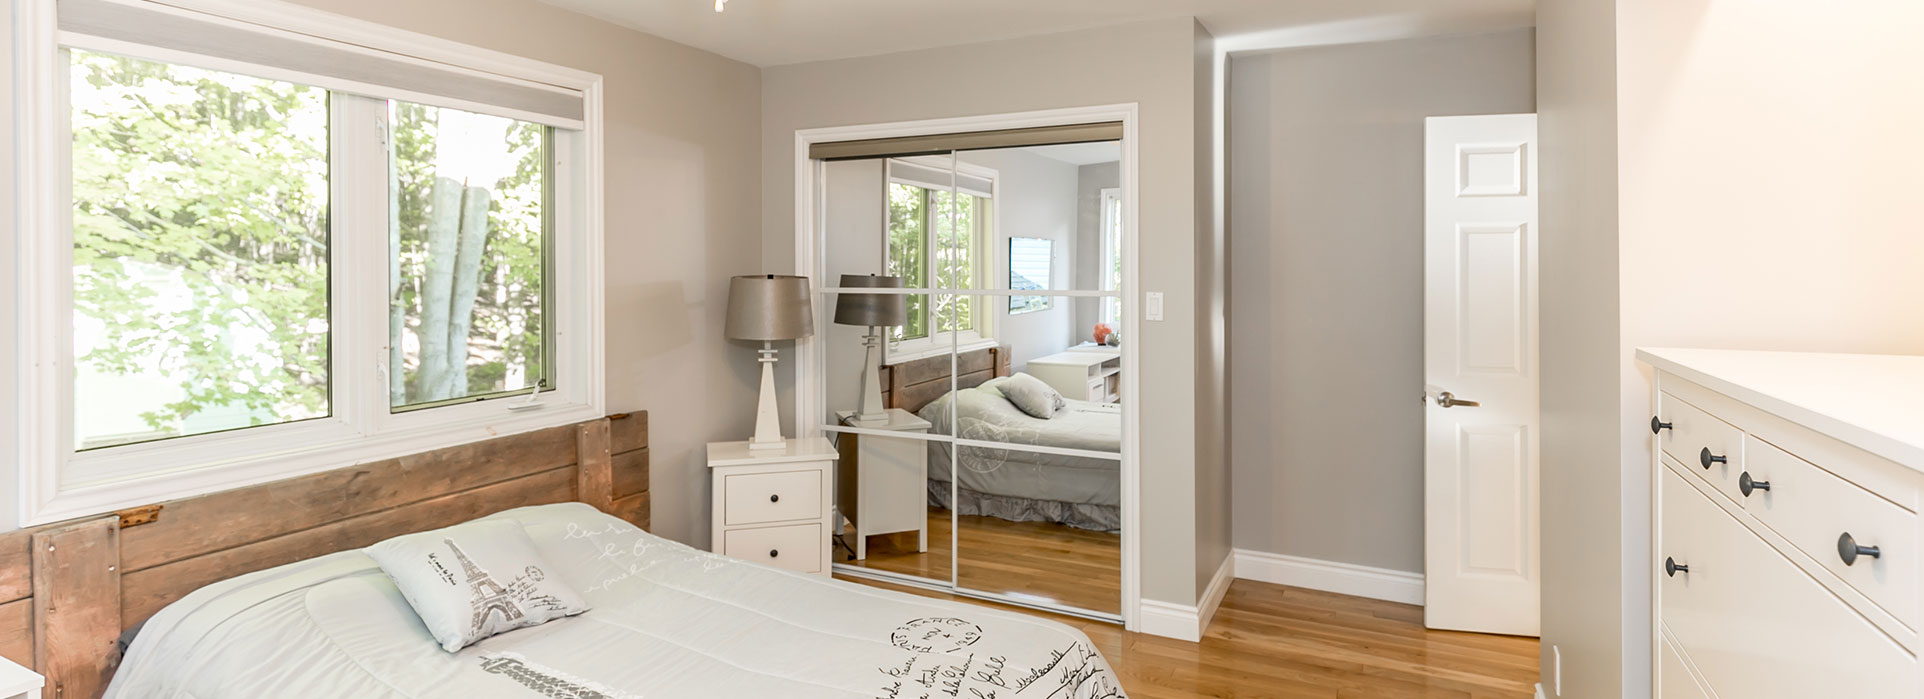 185 Darby Road - Bedroom with Mirror Closet & Large window - Cripps Realty